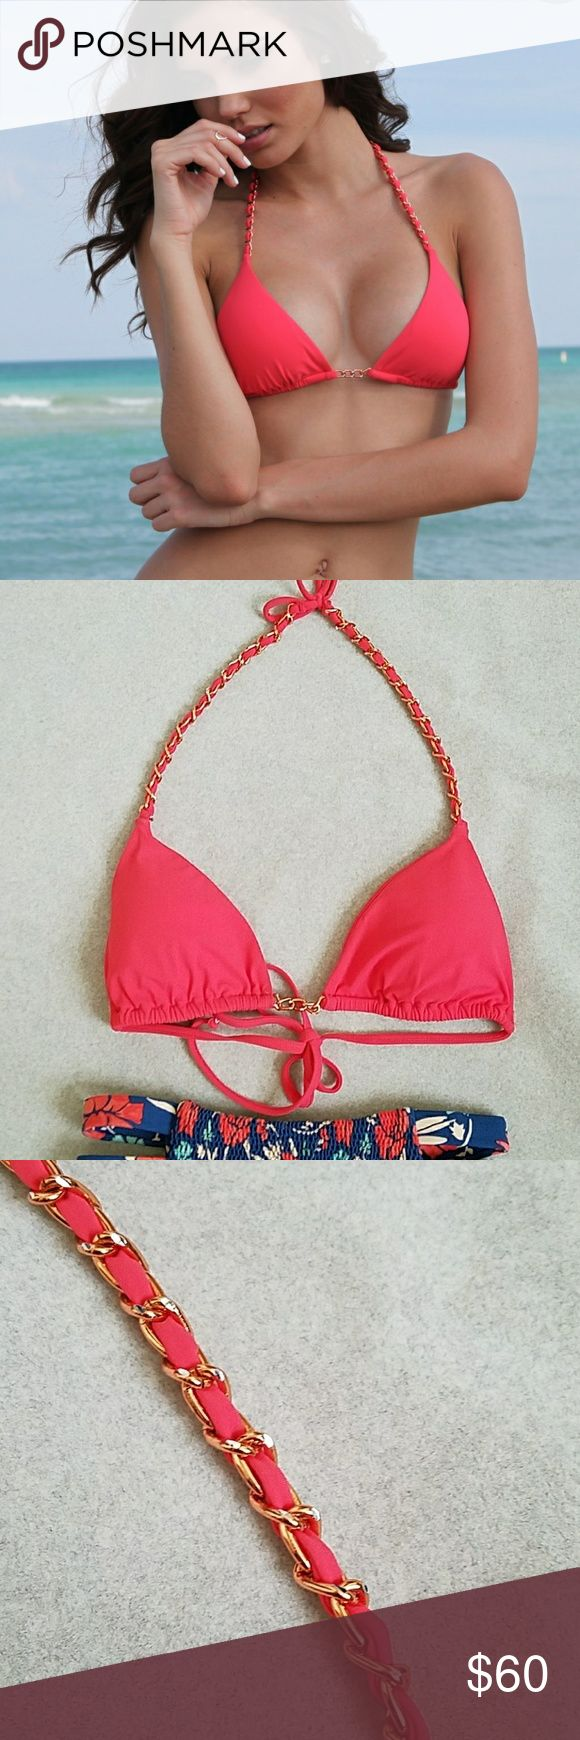 Sauvage California Lotus Chain Bikini Top Size small.  New and unused Sauvage Coral Pink Bikini Top with rose gold and silver chain details. Has padding and is adjustable. Sliding triangle top. Made in USA. Sauvage California Swim Bikinis